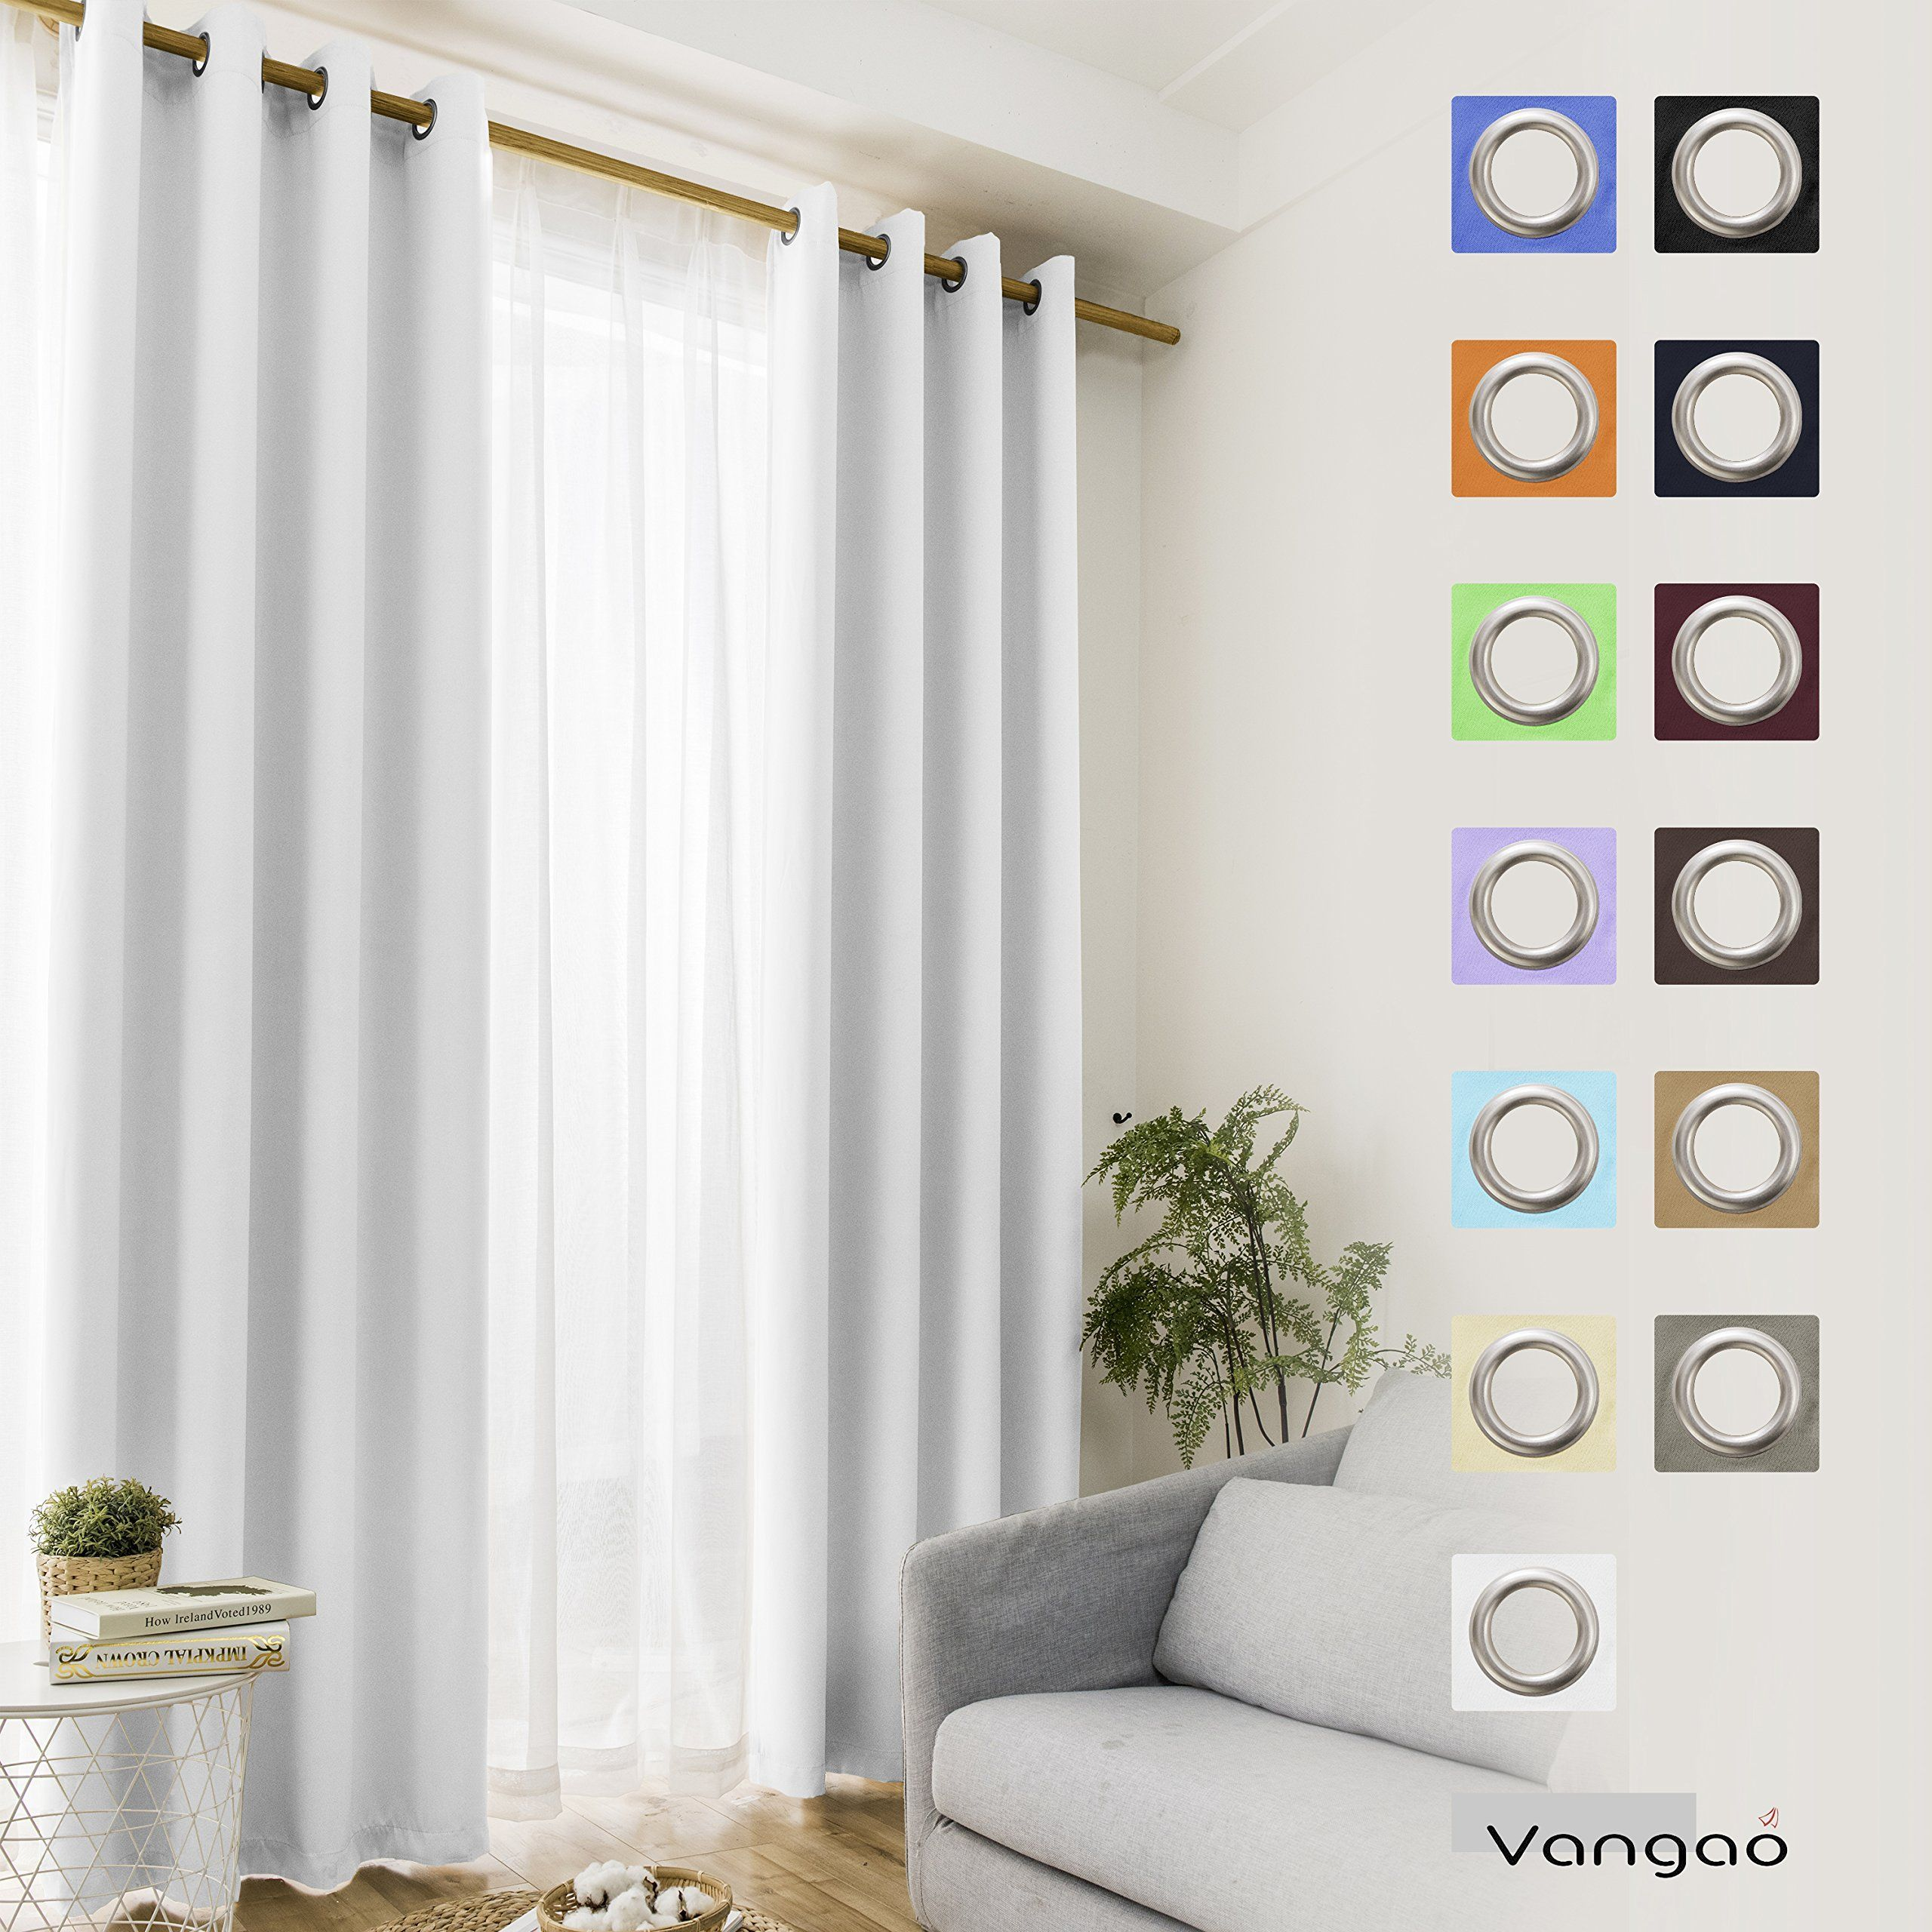 Vangao Light Blocking Greyish White Blackout Curtains Darkening Thermal Insulated Home Decorative Curtain Panels White Blackout Curtains Cool Curtains Curtains #thermal #living #room #curtains